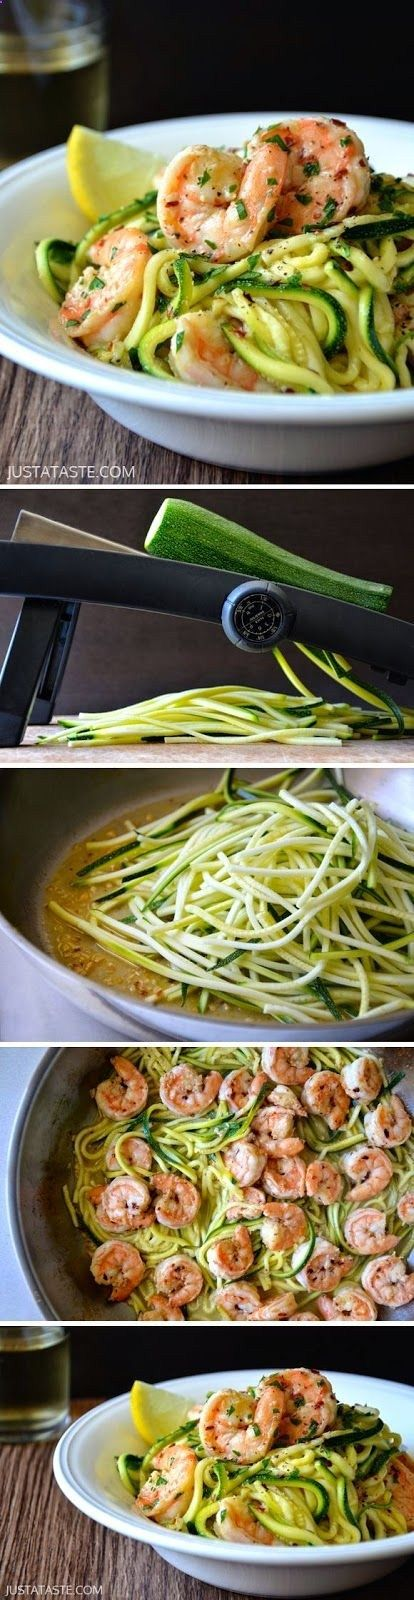 Skinny shrimp scampi with zucchini pasta